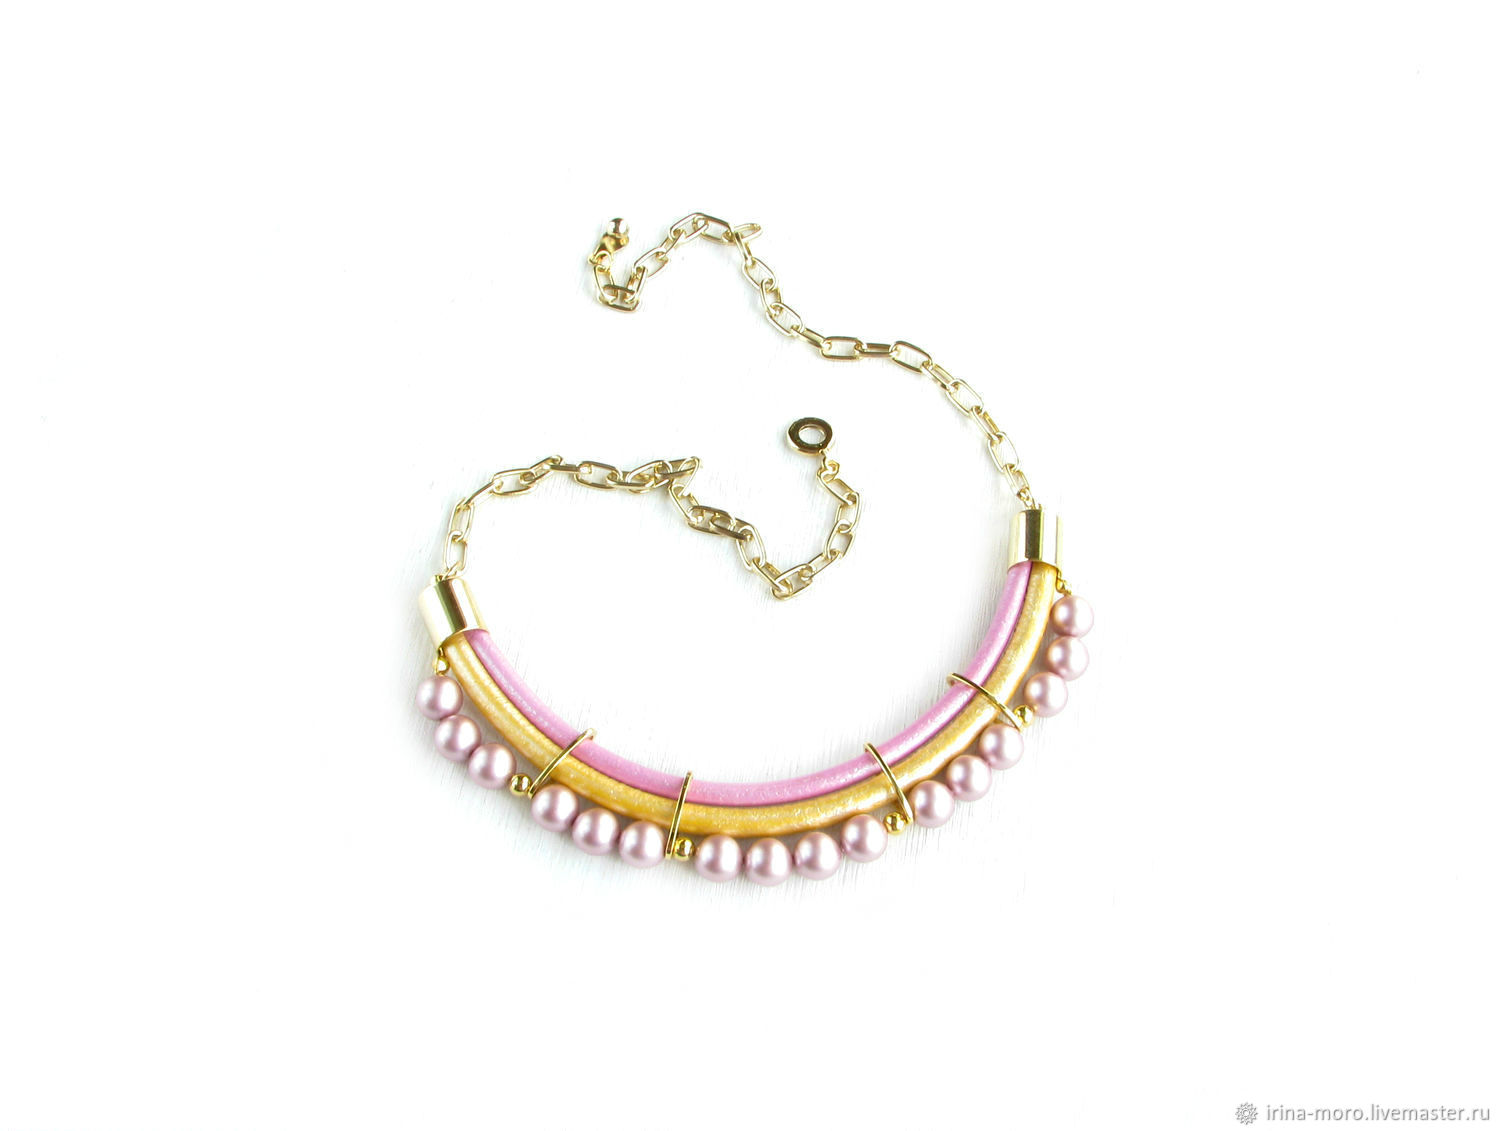 Necklace with Swarovski pearls 'Lollipops' pink necklace, gold, Necklace, Moscow,  Фото №1